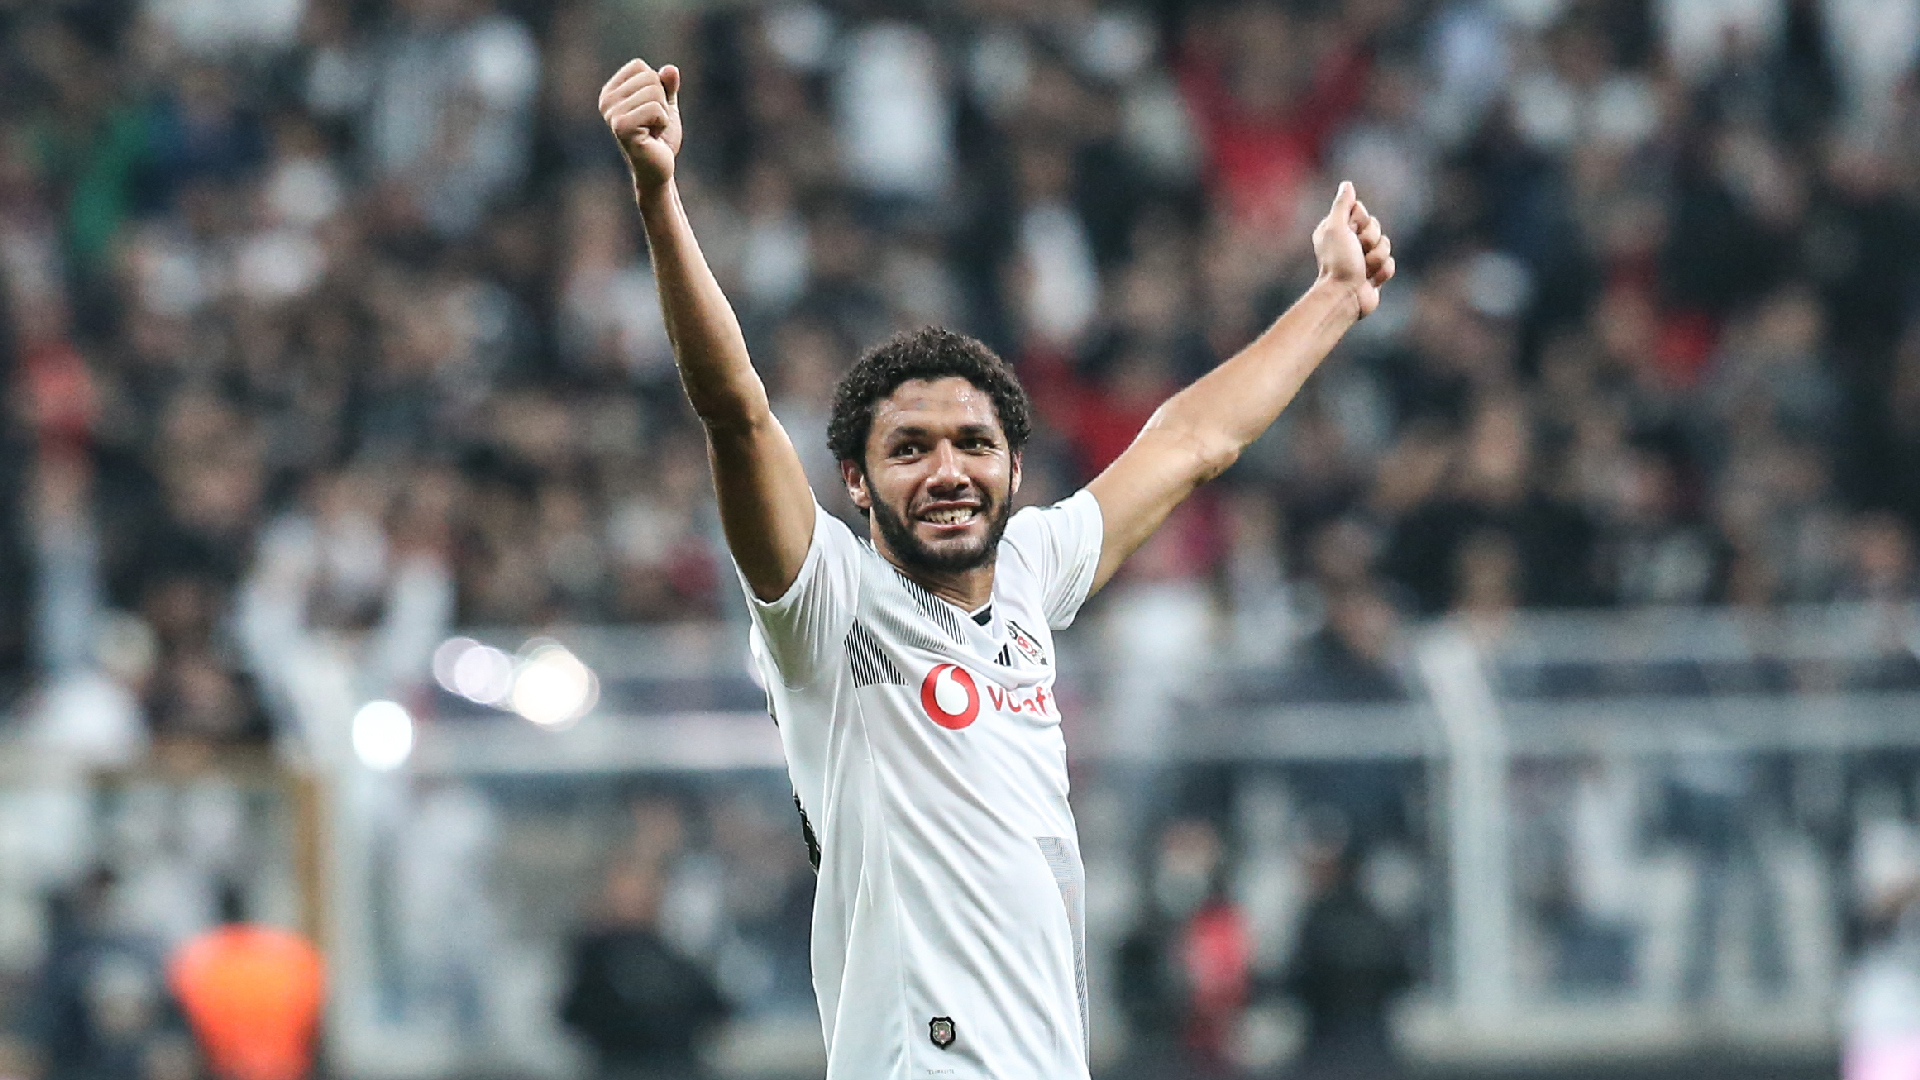 Arsenal midfielder Elneny announces end of Besiktas loan spell